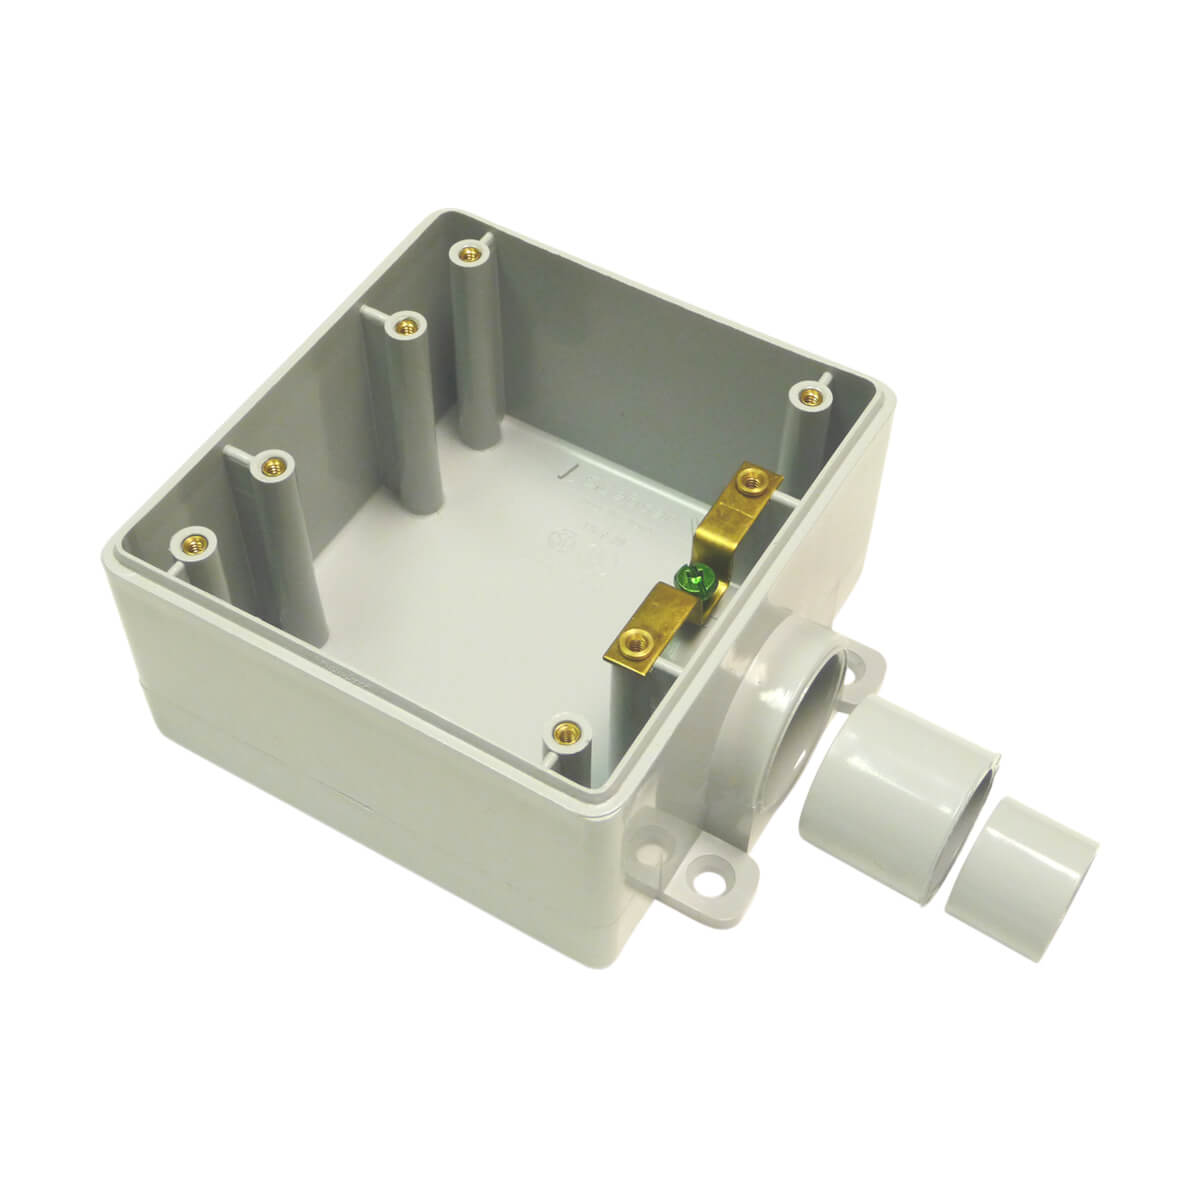 PVC FSE 3-1 Double Gang Box - with reducer bushings - Hub - 1/2-in - 3-in - 1-in